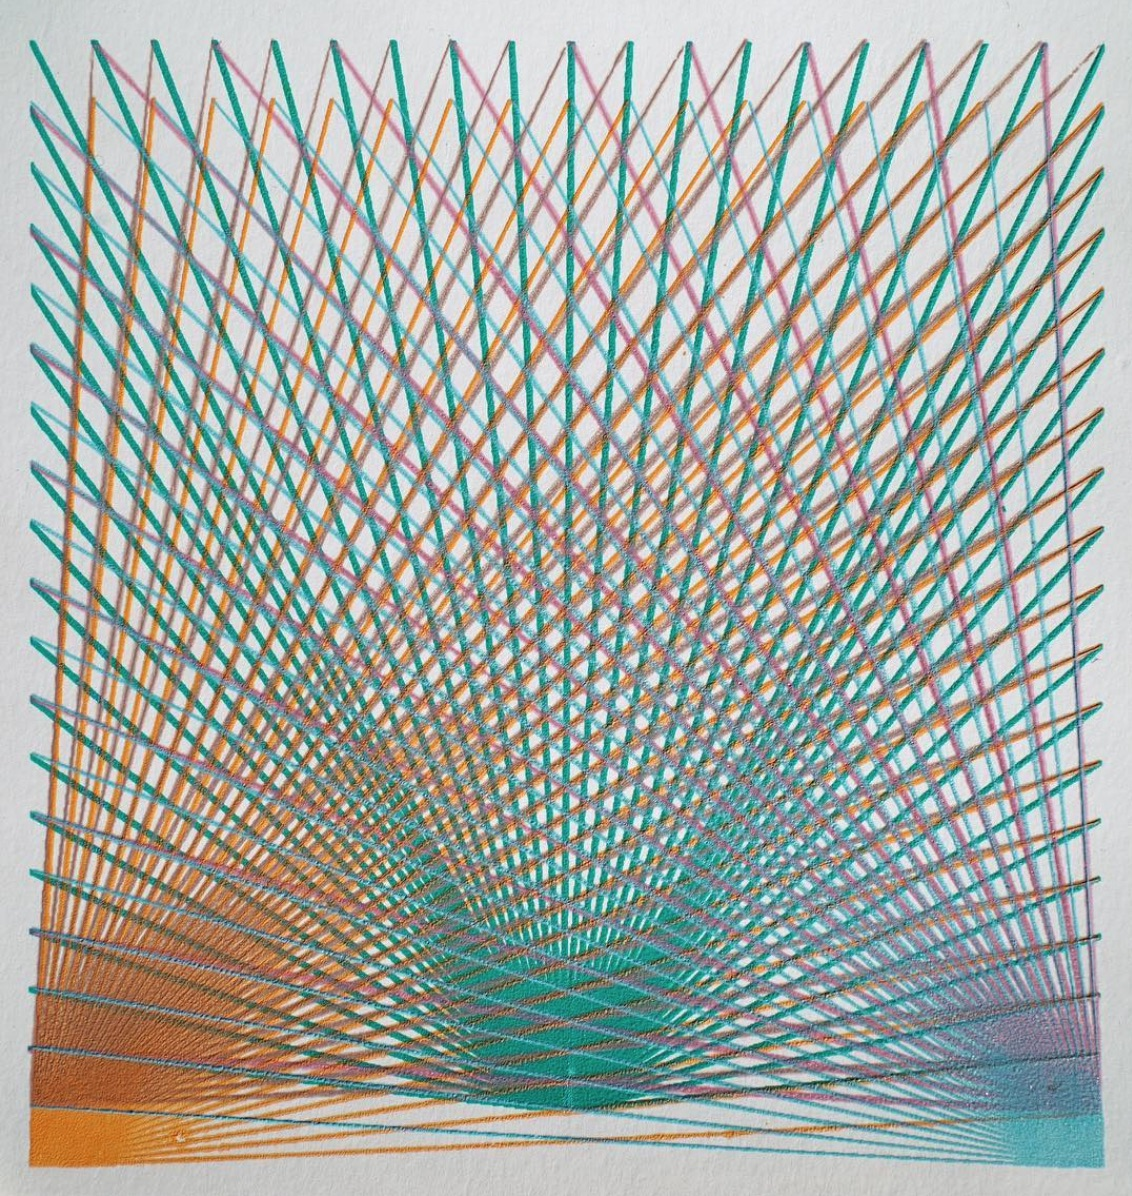 Signal Flare 2  (2018), acrylic on paper, unique screen print, 20 x 20 cm